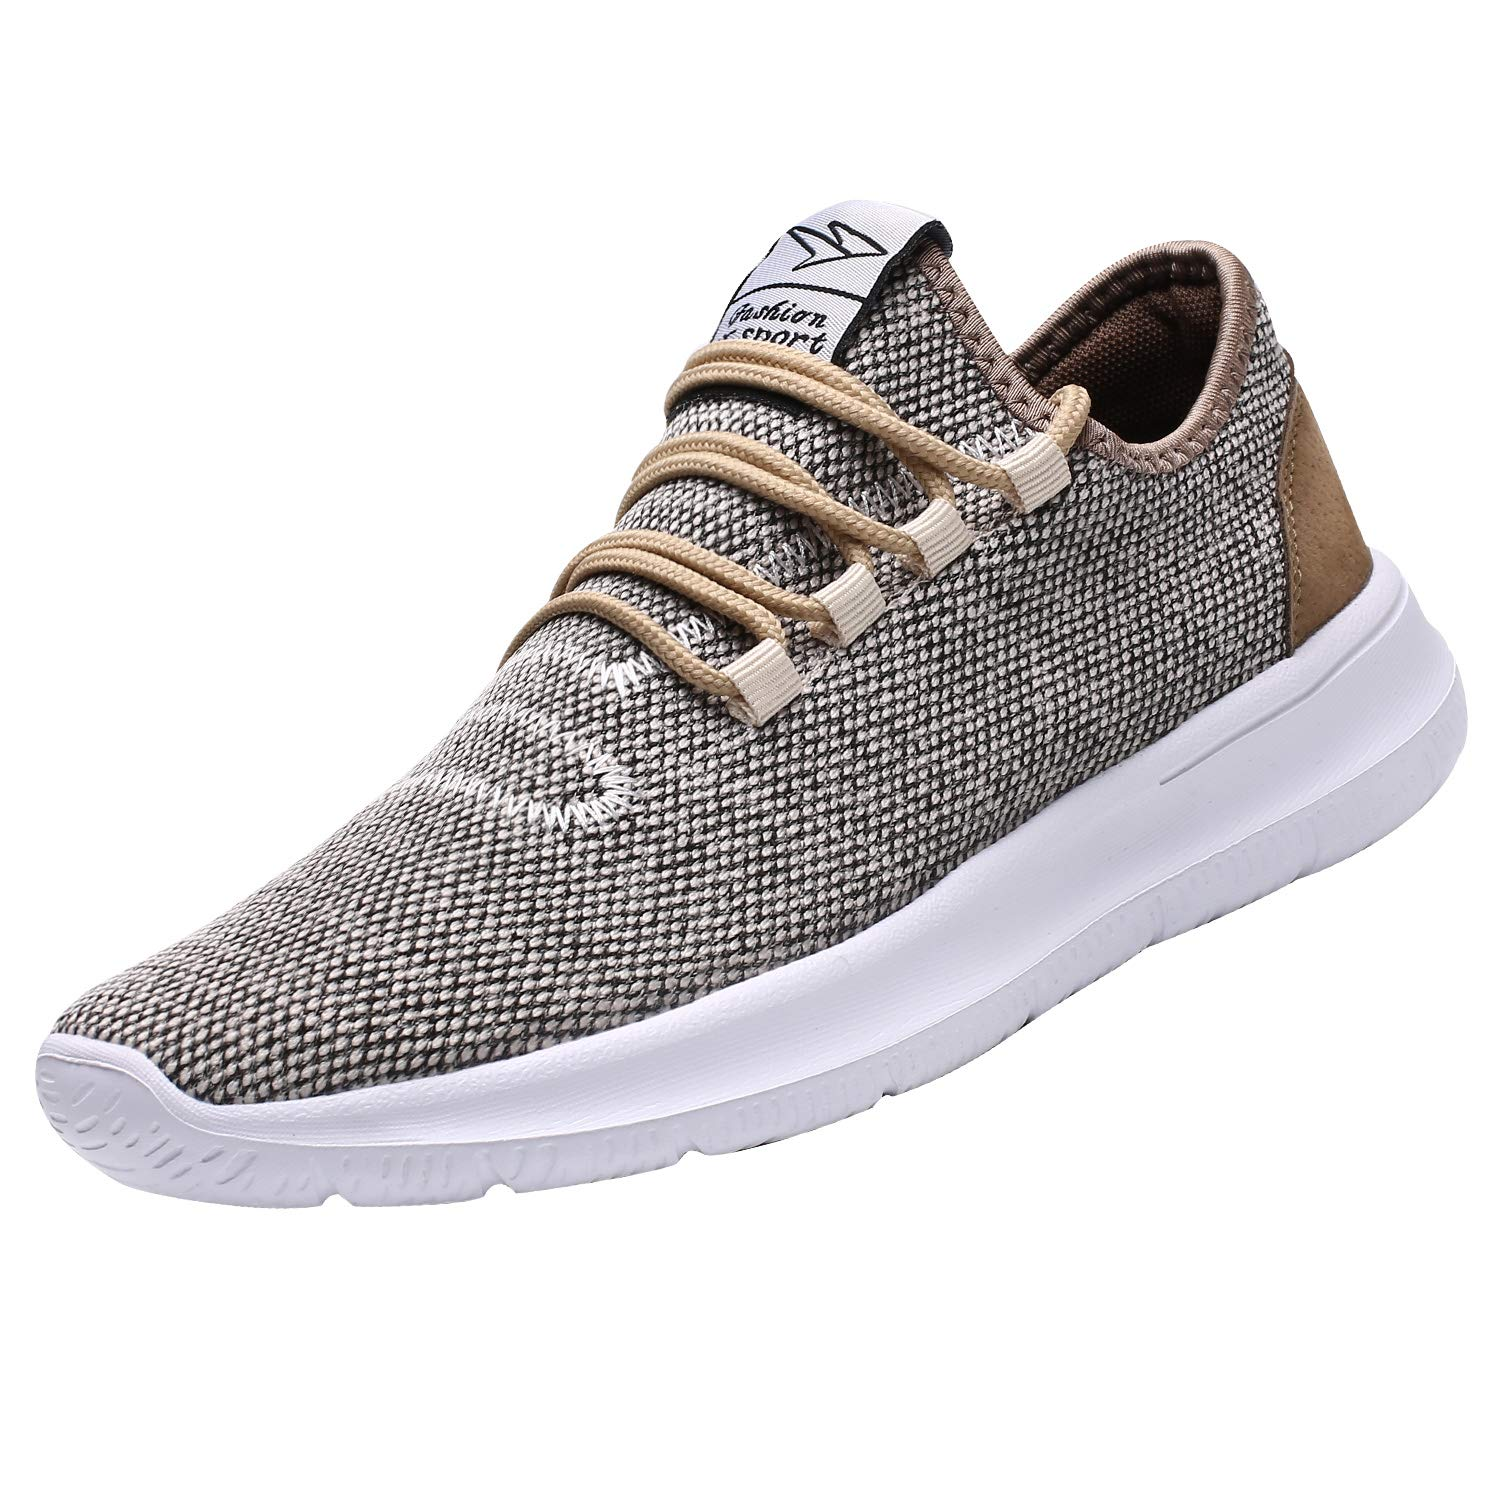 KEEZMZ Men's Running Shoes Fashion Breathable Sneakers Mesh Soft Sole Casual Athletic Lightweight (8, Beige) by KEEZMZ